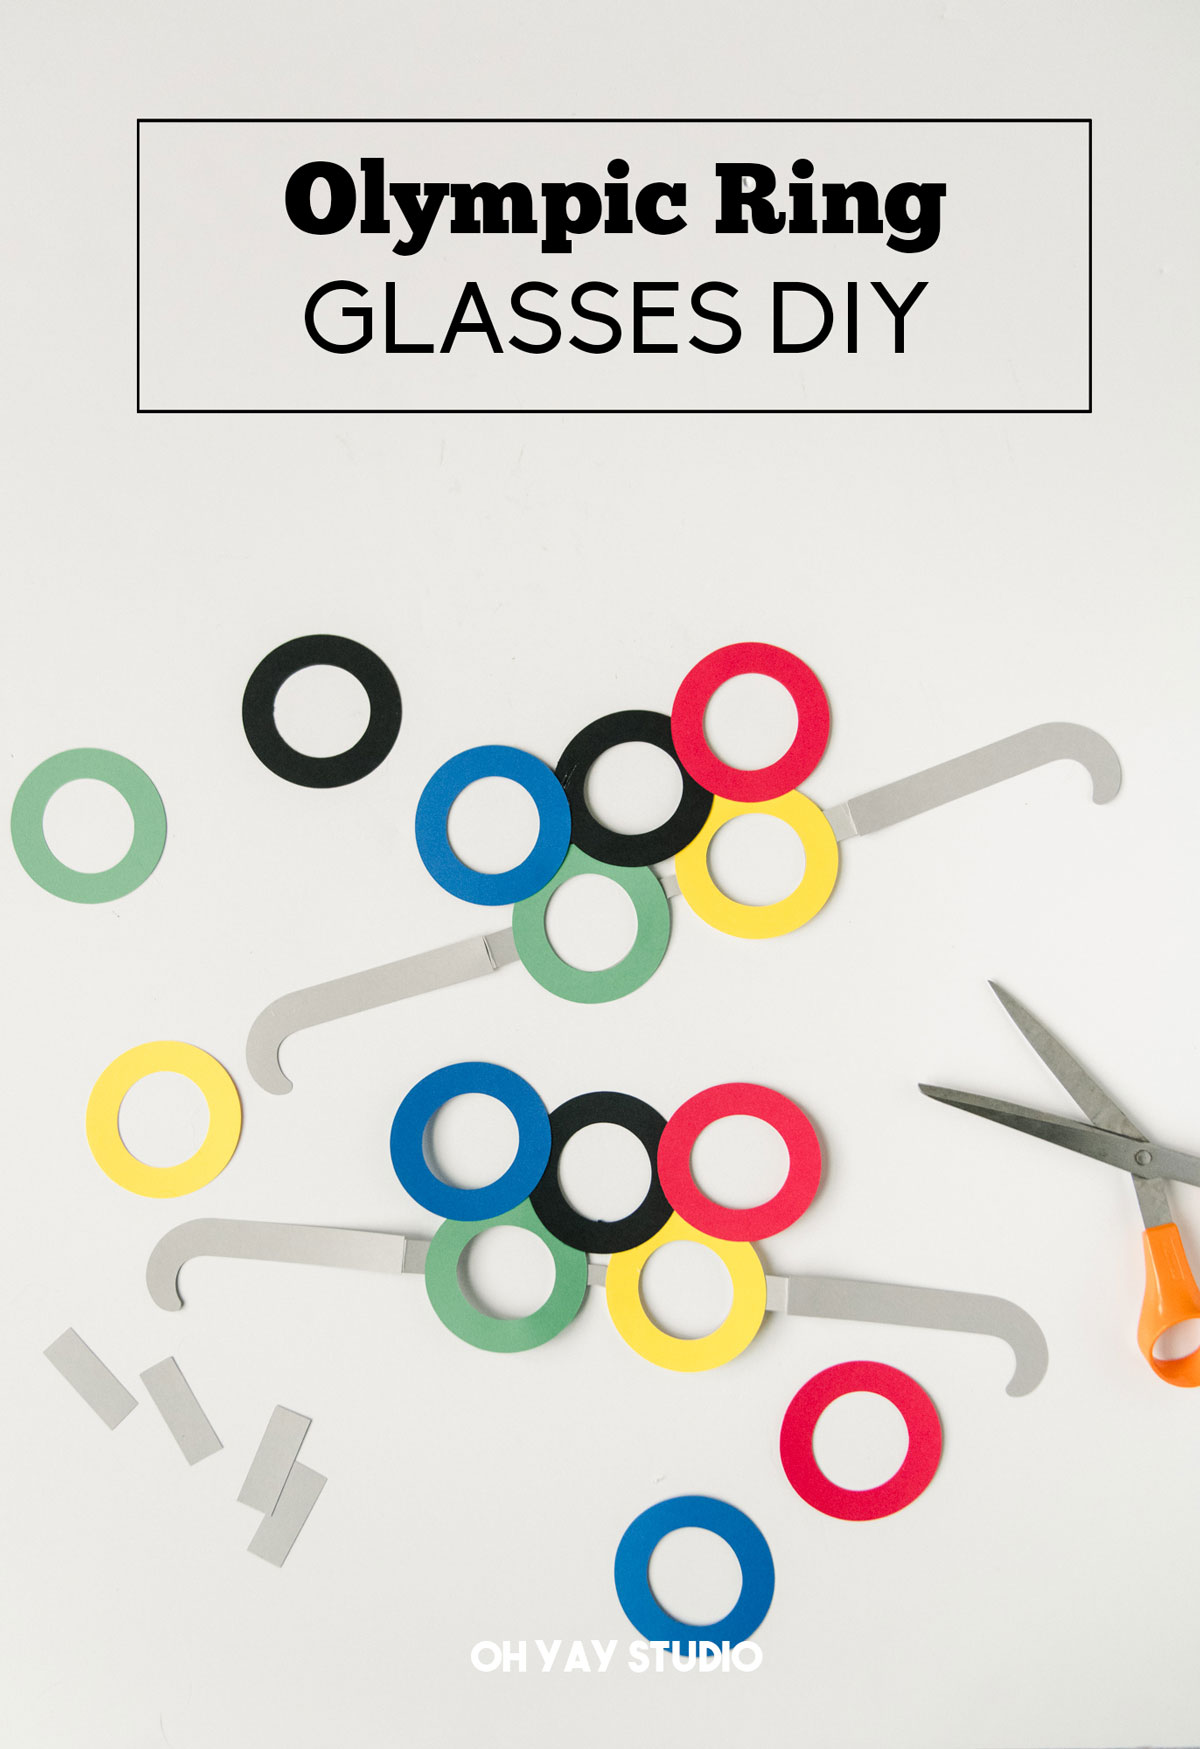 Olympic ring glasses, Olympic SVG files, free Olympic SVG file, Olympic party ideas, Olympic opening ceremony party idea, Olympic party, Olympic DIY, DIY olympic ideas